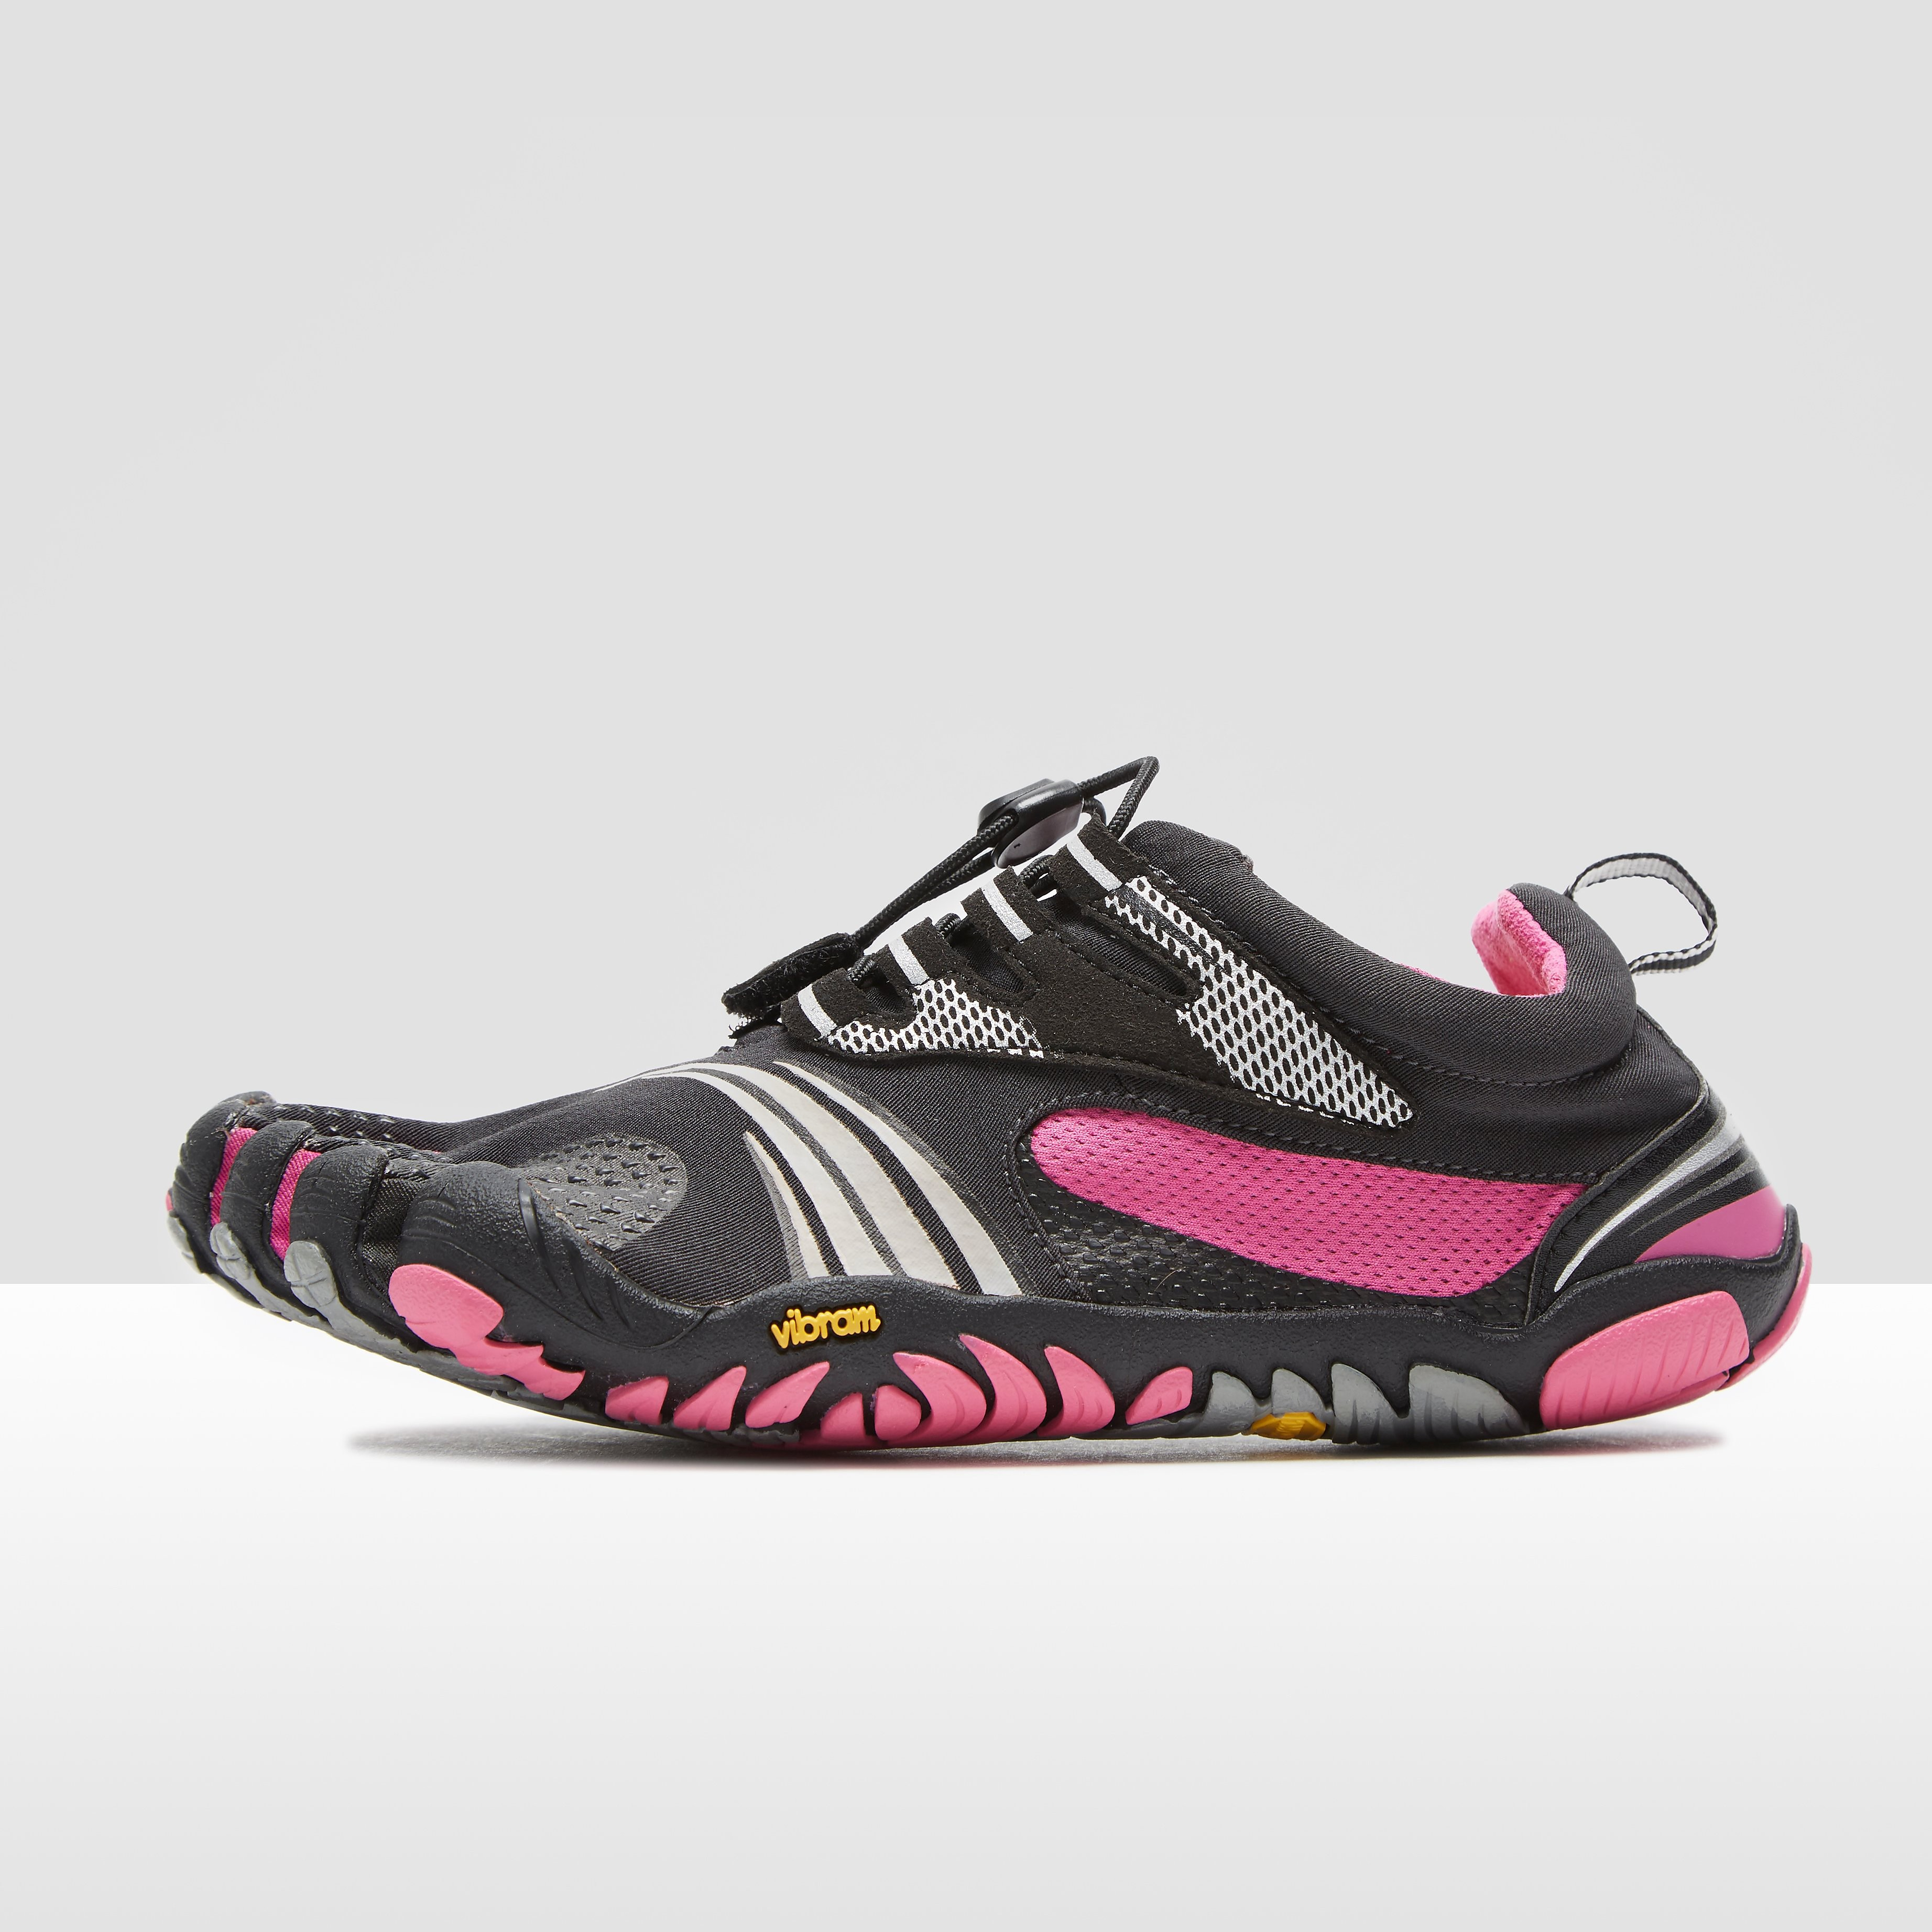 Vibram Five Fingers KMD Sport LS Women's Running Shoe